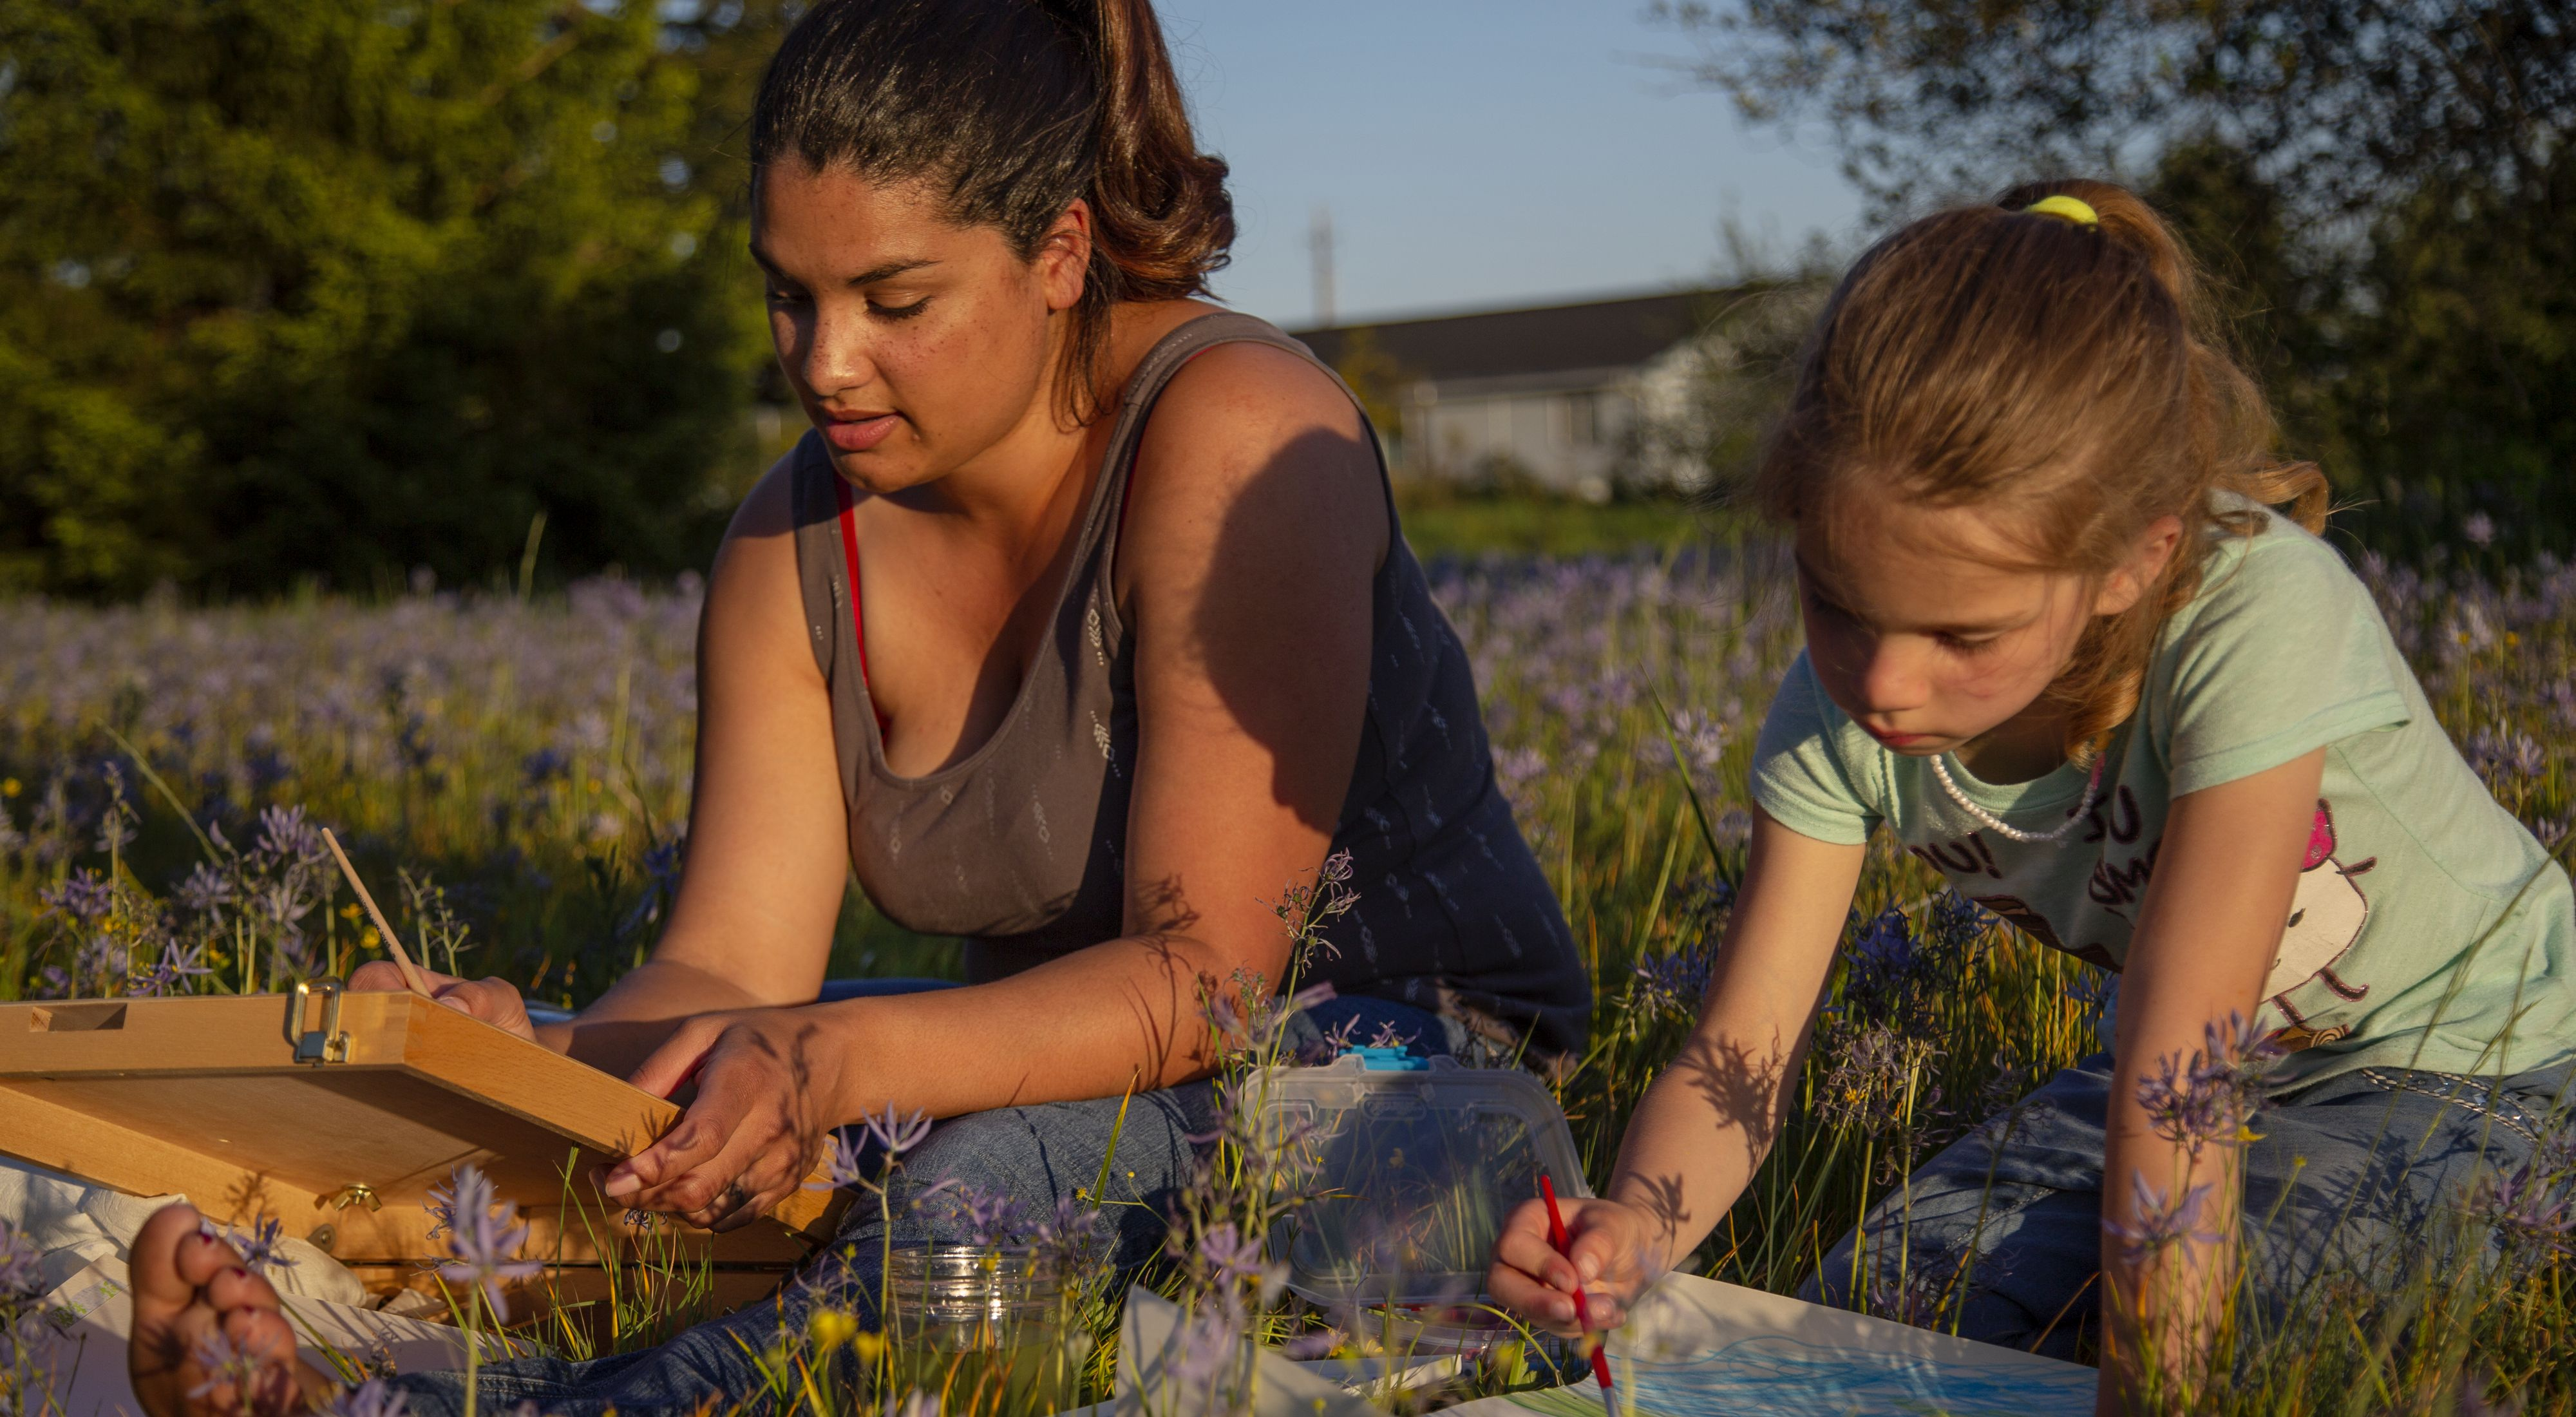 Kenison sits beside daughter-hair in ponytail-in a field of high purple meadow flowers, each with a canvas and paintbrush. Both focused on painting. House sits in distance.